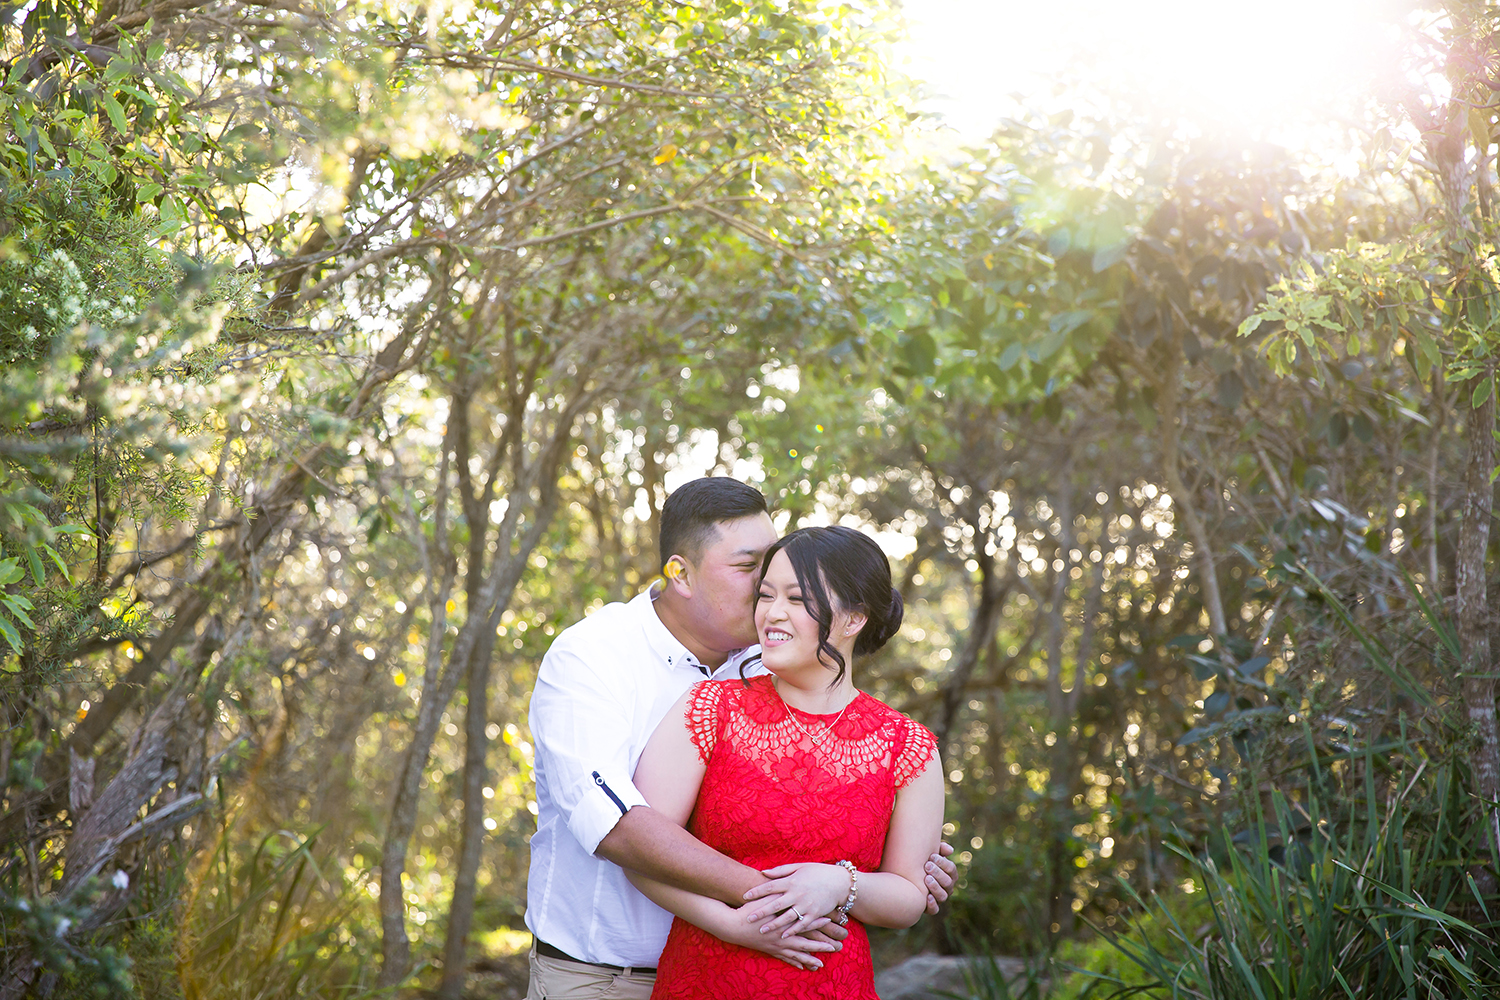 Shelly Beach Manly Pre-Wedding Engagement Session - jennifer Lam Photography (2).jpg